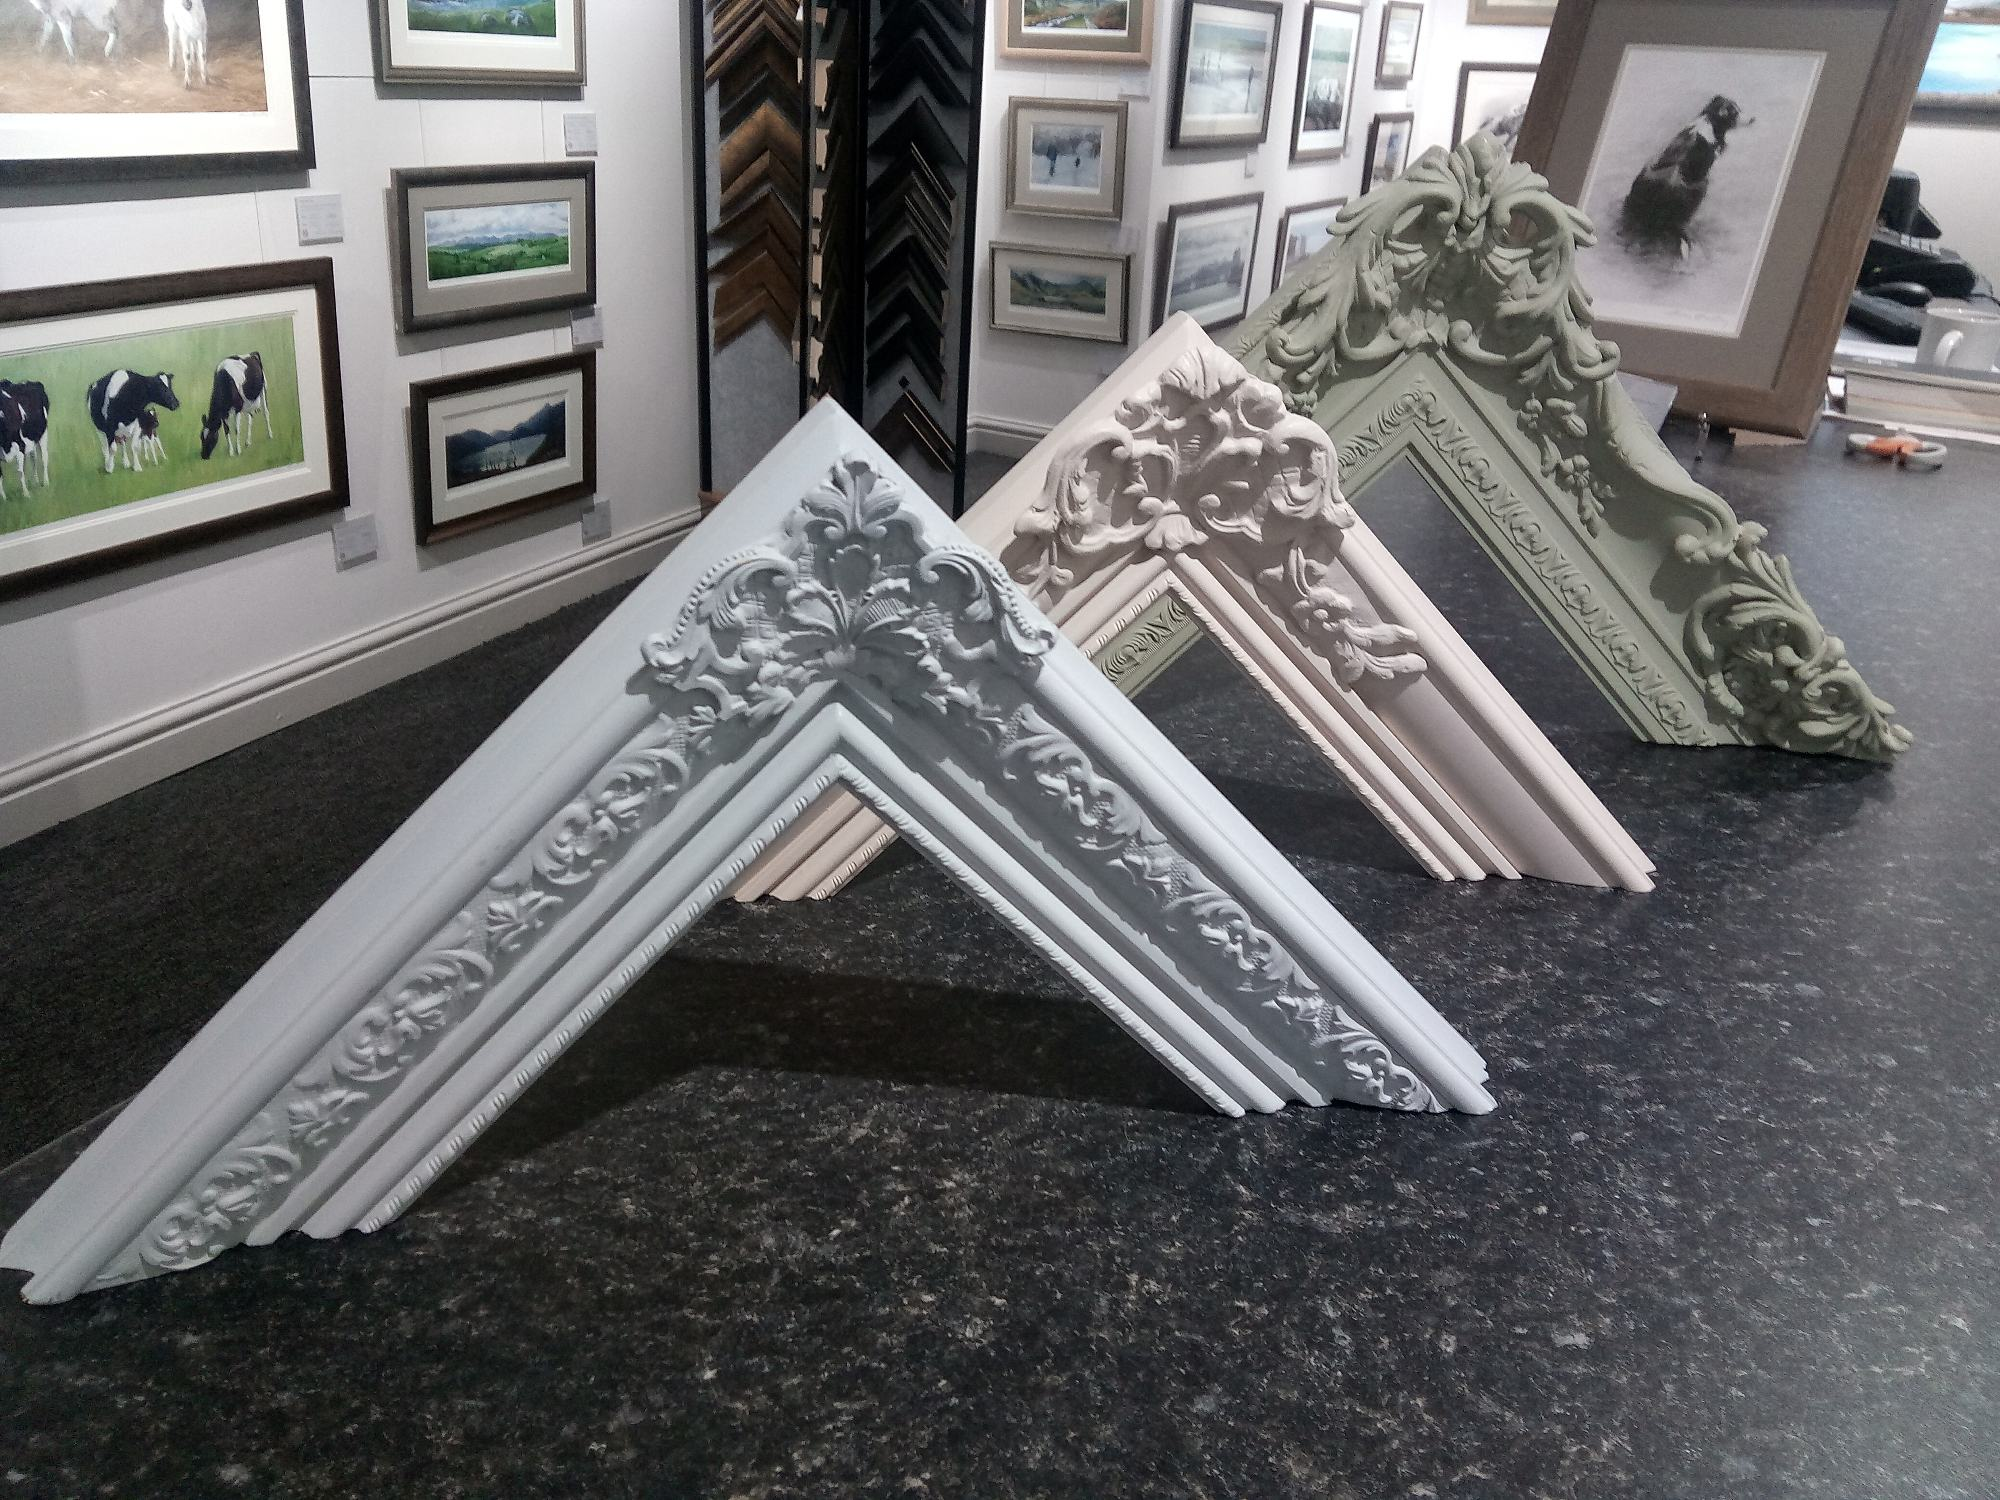 Bespoke picture frame mouldings